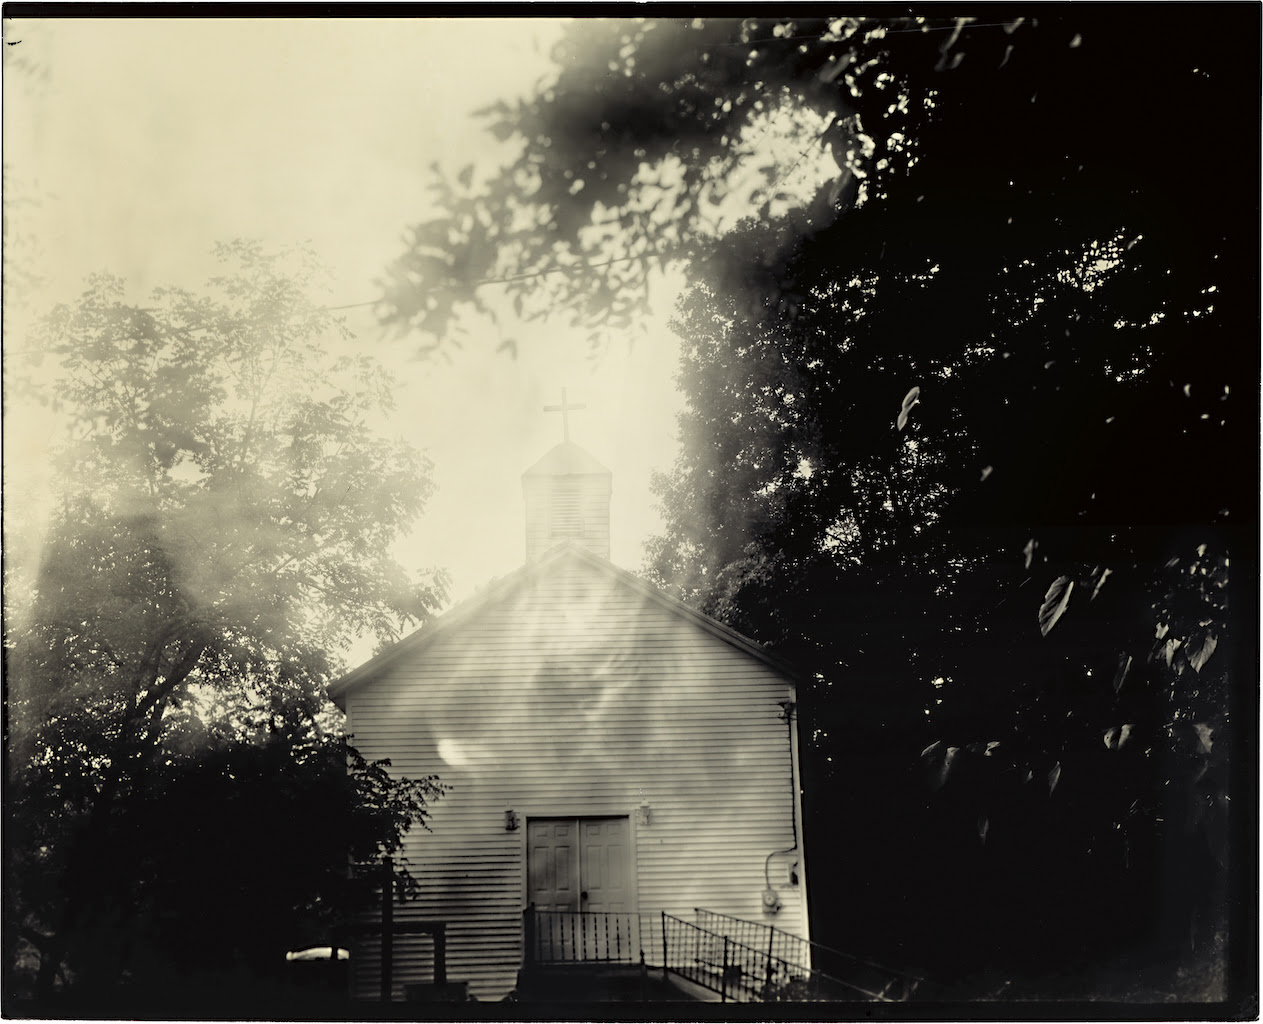 Sally Mann,  (American, born 1951), St. Paul African Methodist Episcopal, 2008-2016, gelatin silver print, Collection of the artist. Image © Sally Mann.